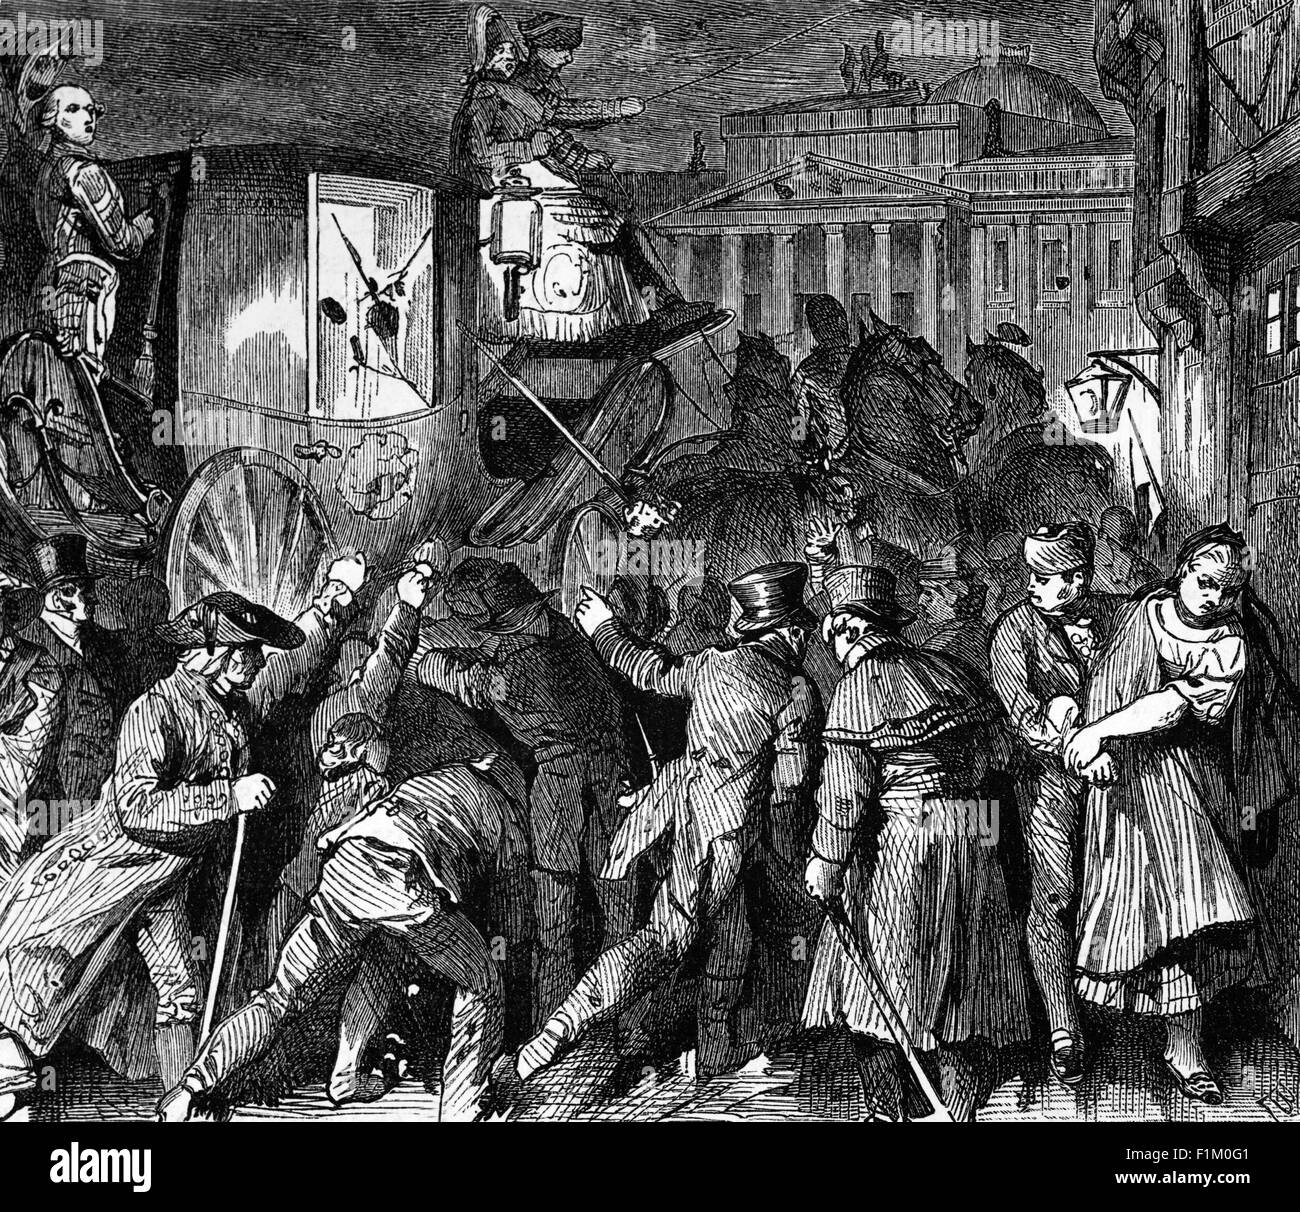 Revolutionary riots in the German states. They were part of the Revolutions of 1848 that broke out in many countries - Stock Image